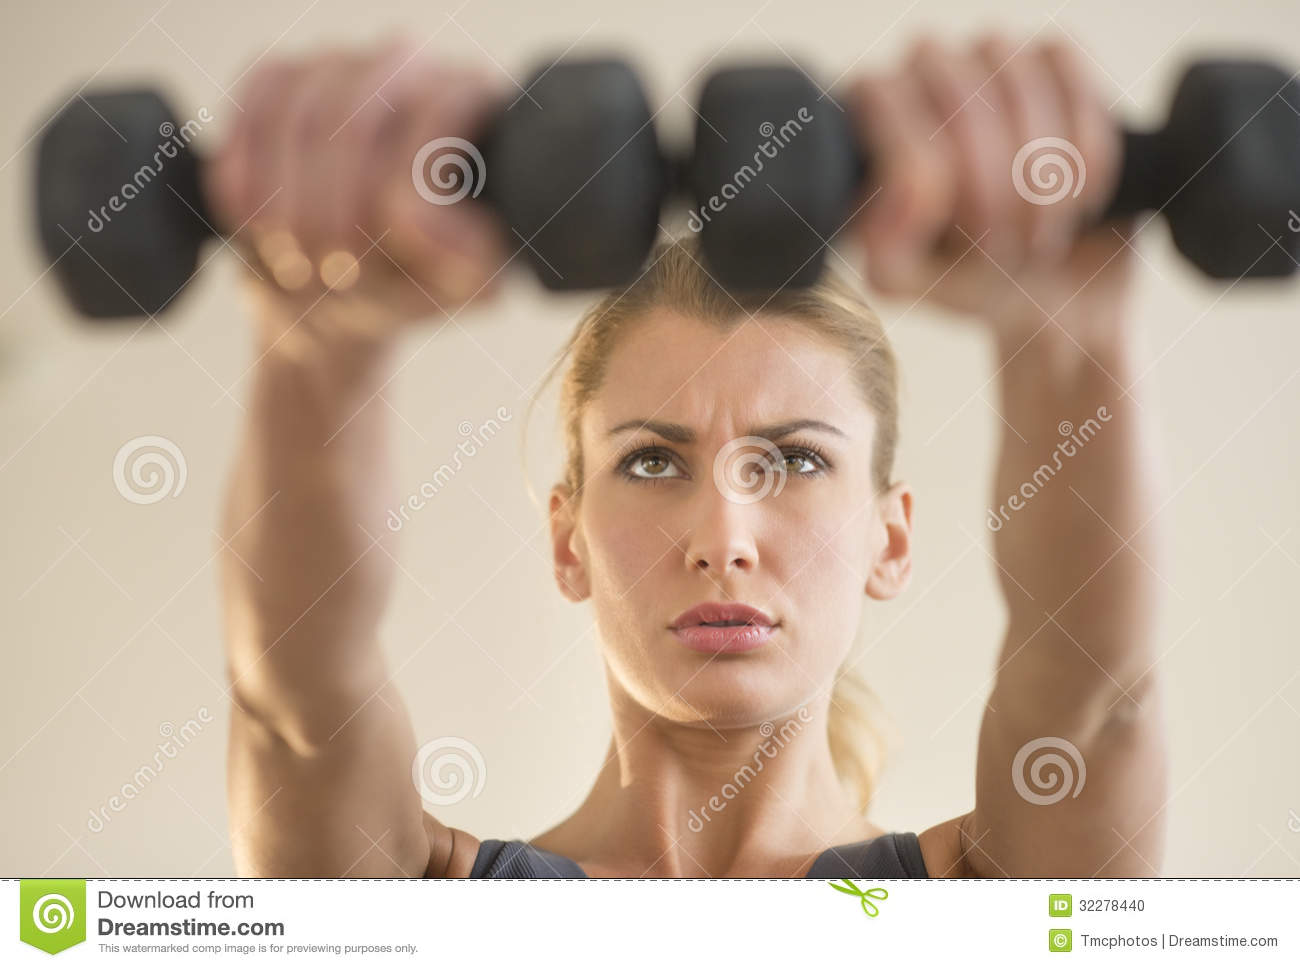 Health and fitness club business plan